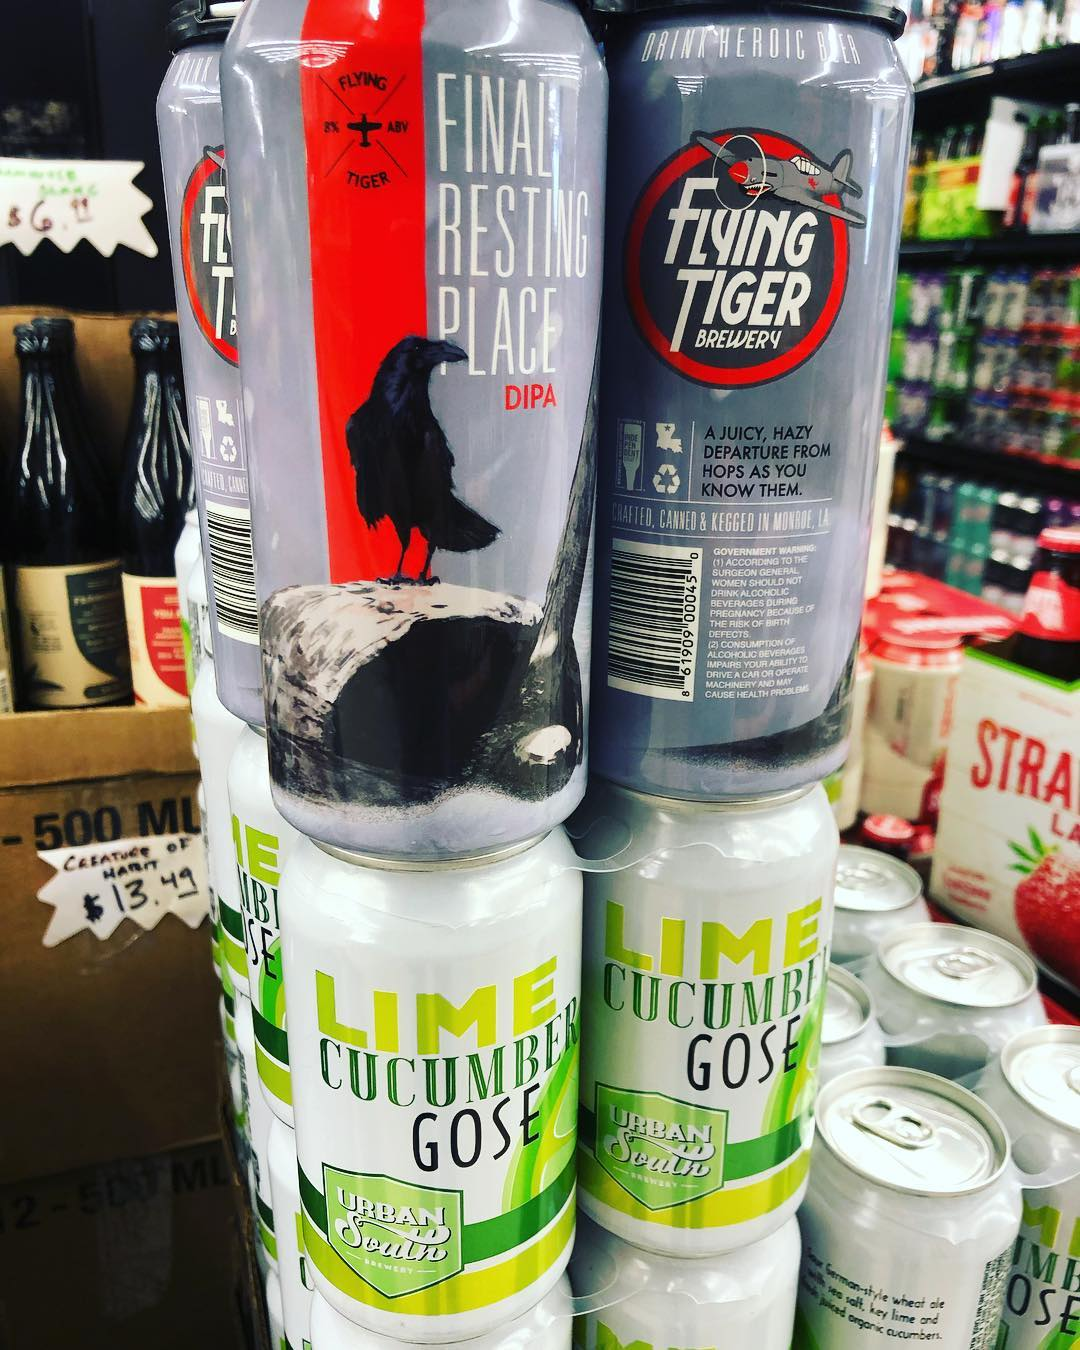 New and returning local brews now available at our #midcitybr location! @urbansouthbeer @flyingtigerbrewery.br #beer #drinklocal…